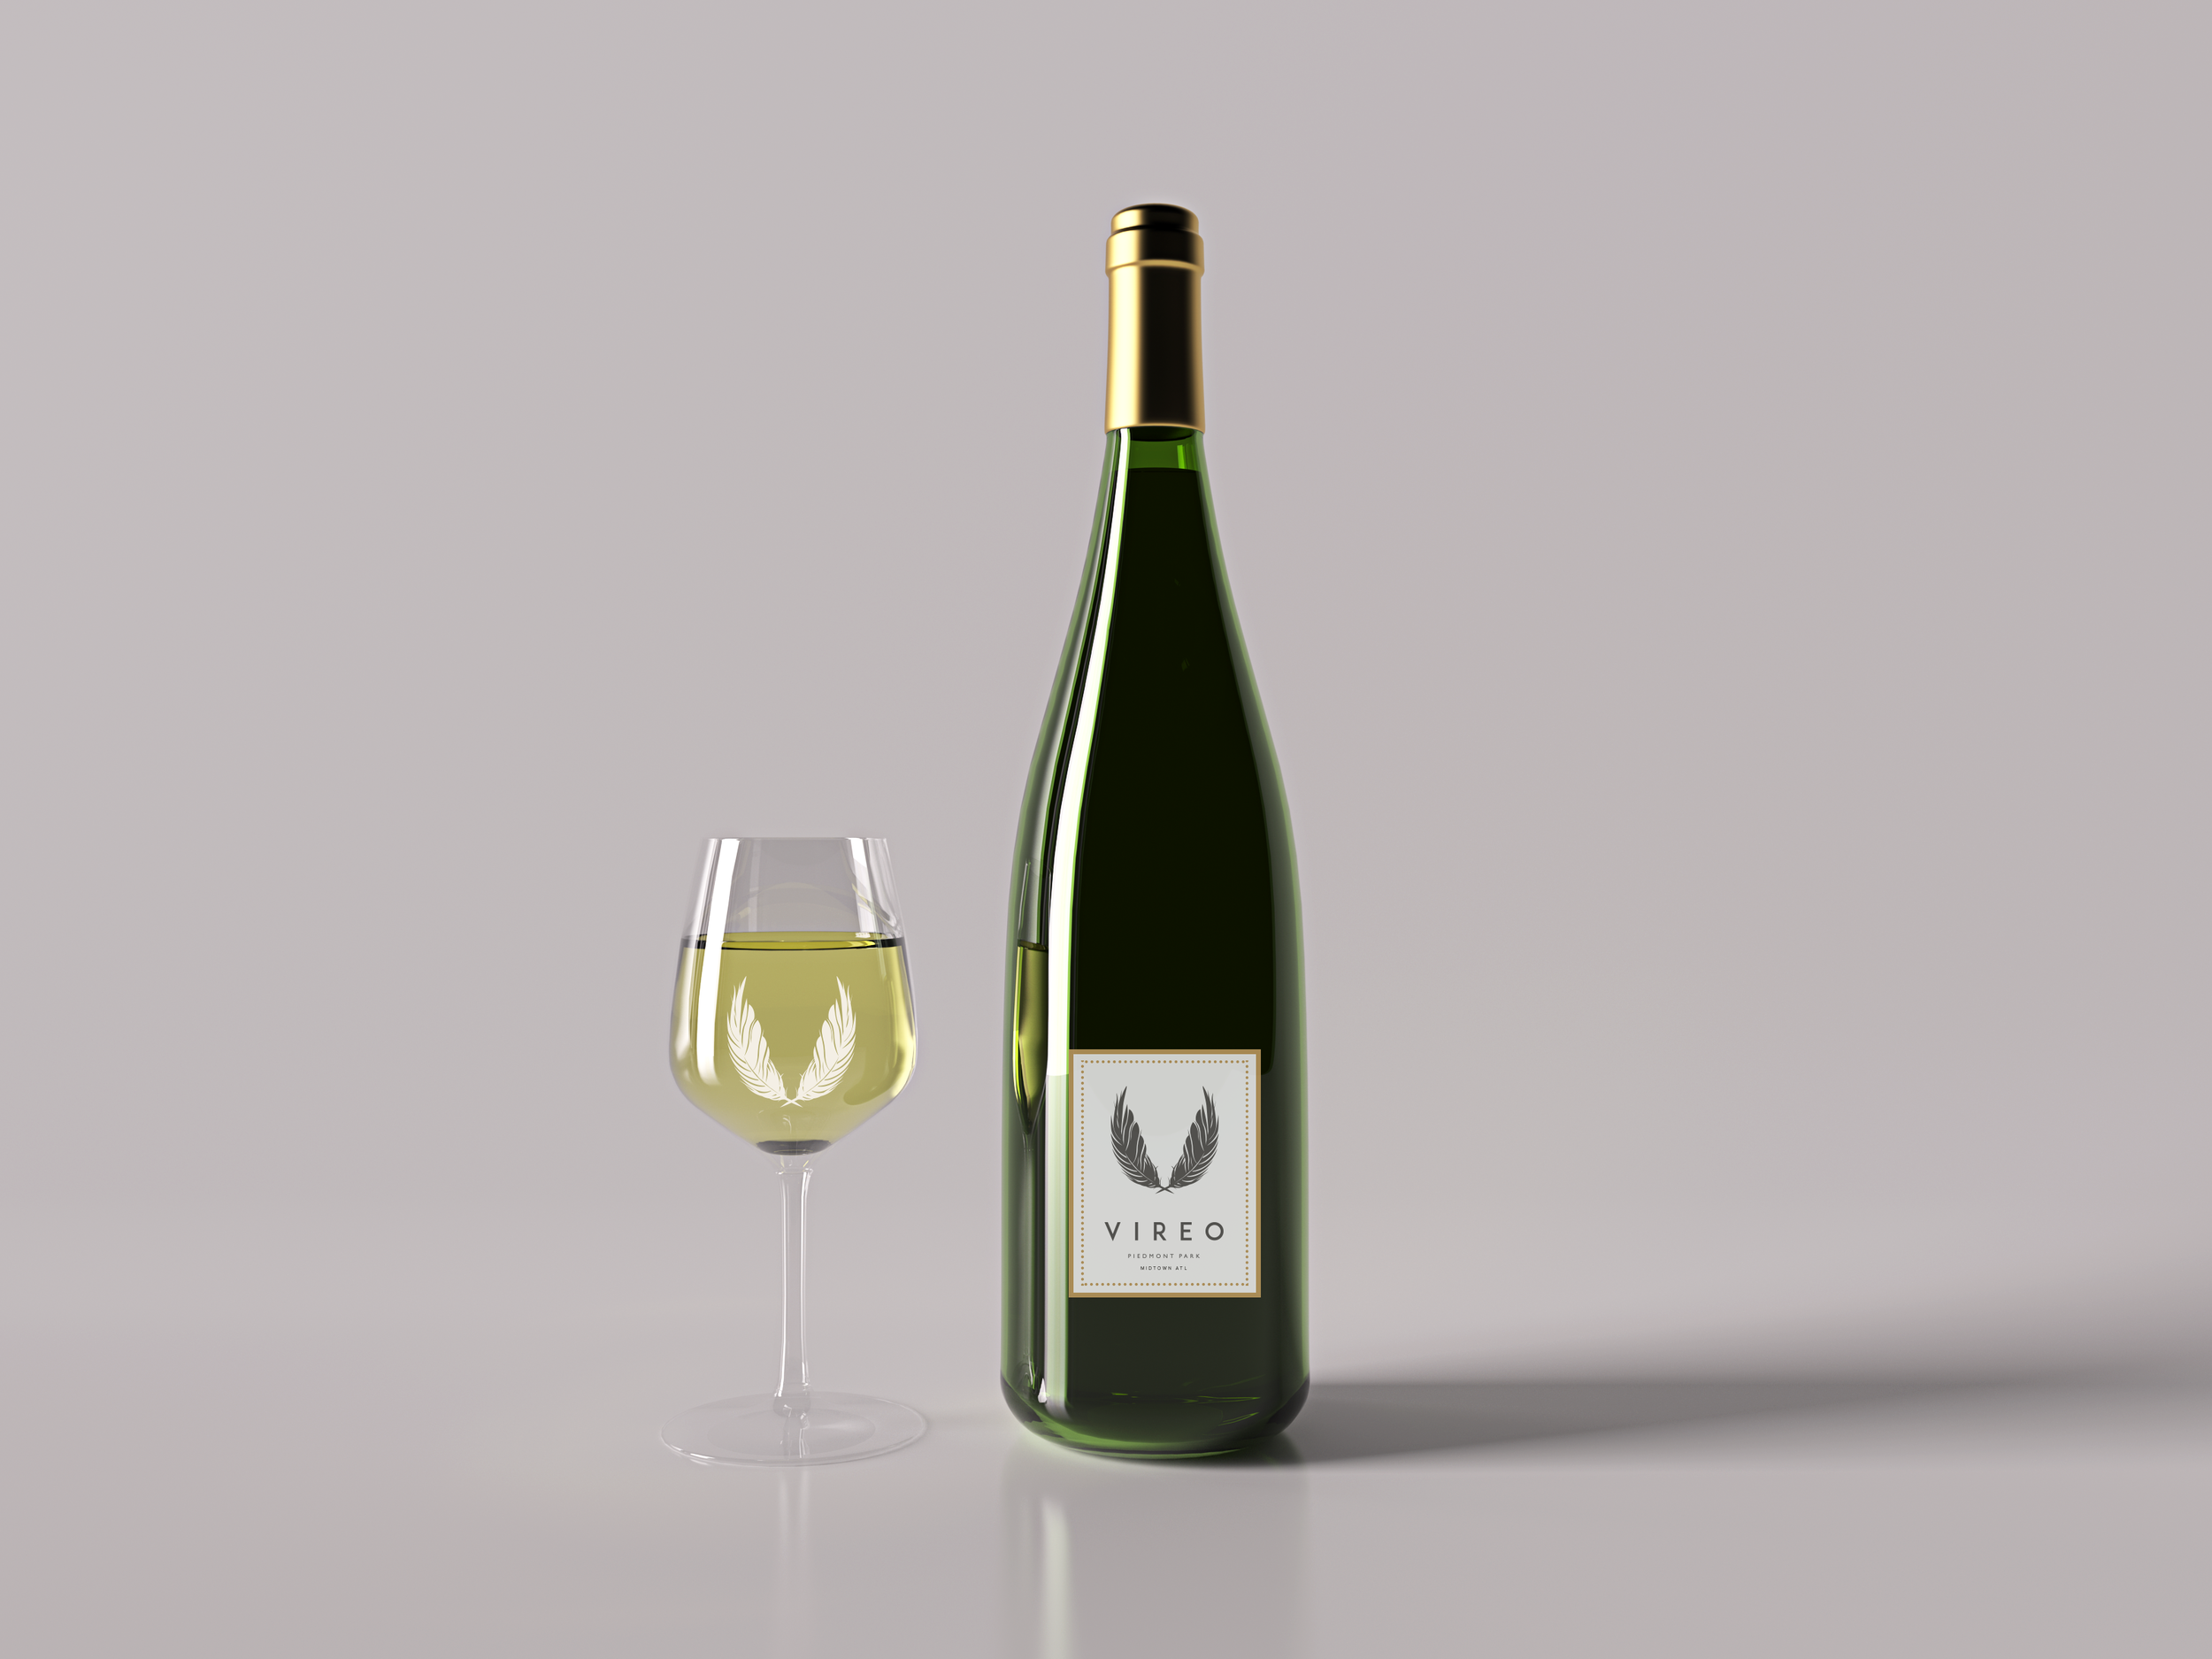 Realistic Wine Bottle Mockup Vol.2 - Anthony Boyd.png